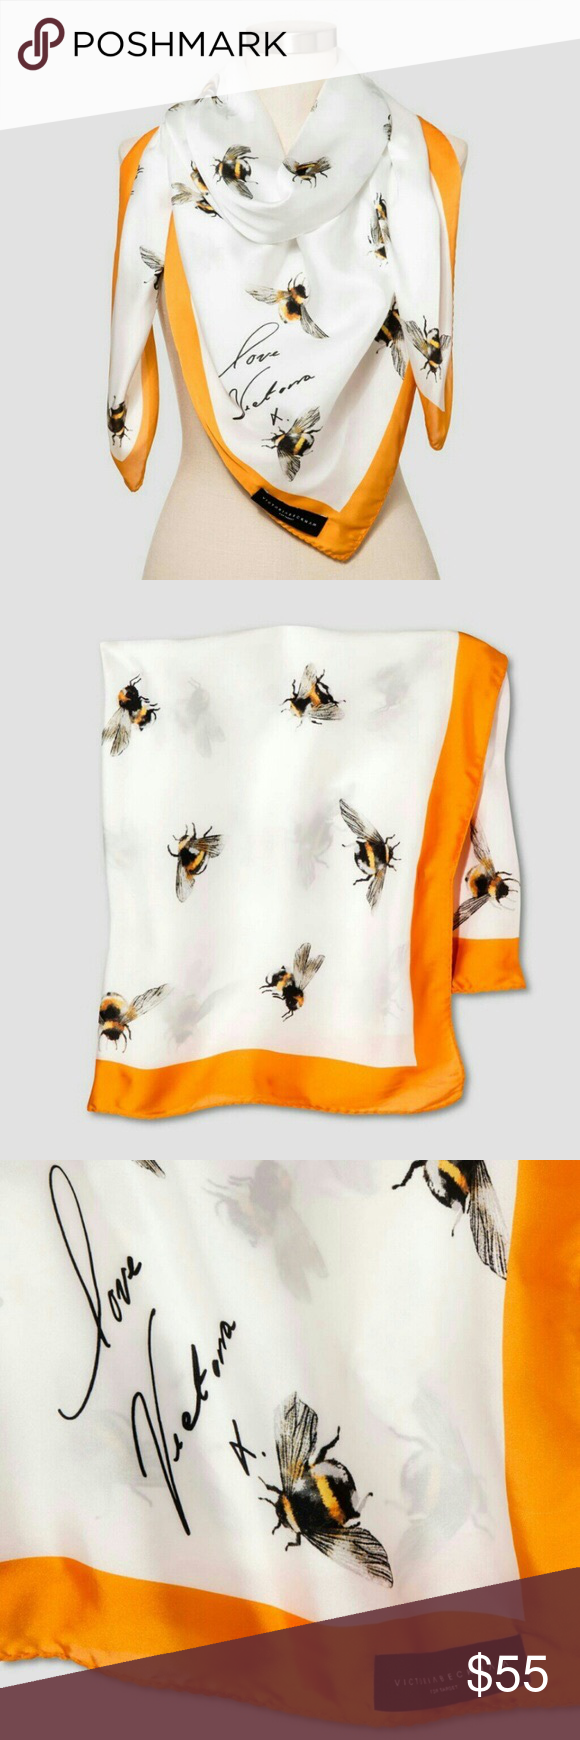 NWT Victoria Beckham for Target Bee Print Scarf Brand new with tags Victoria Beckham for Target bee print scarf with marigold trim. Silky lightweight fabric. Whimsical bee print. Signature detail. Can be worn a variety of ways. The bee print adds fresh style, while the rich marigold border brings a pop of saturated color. Victoria Beckham Accessories Scarves & Wraps